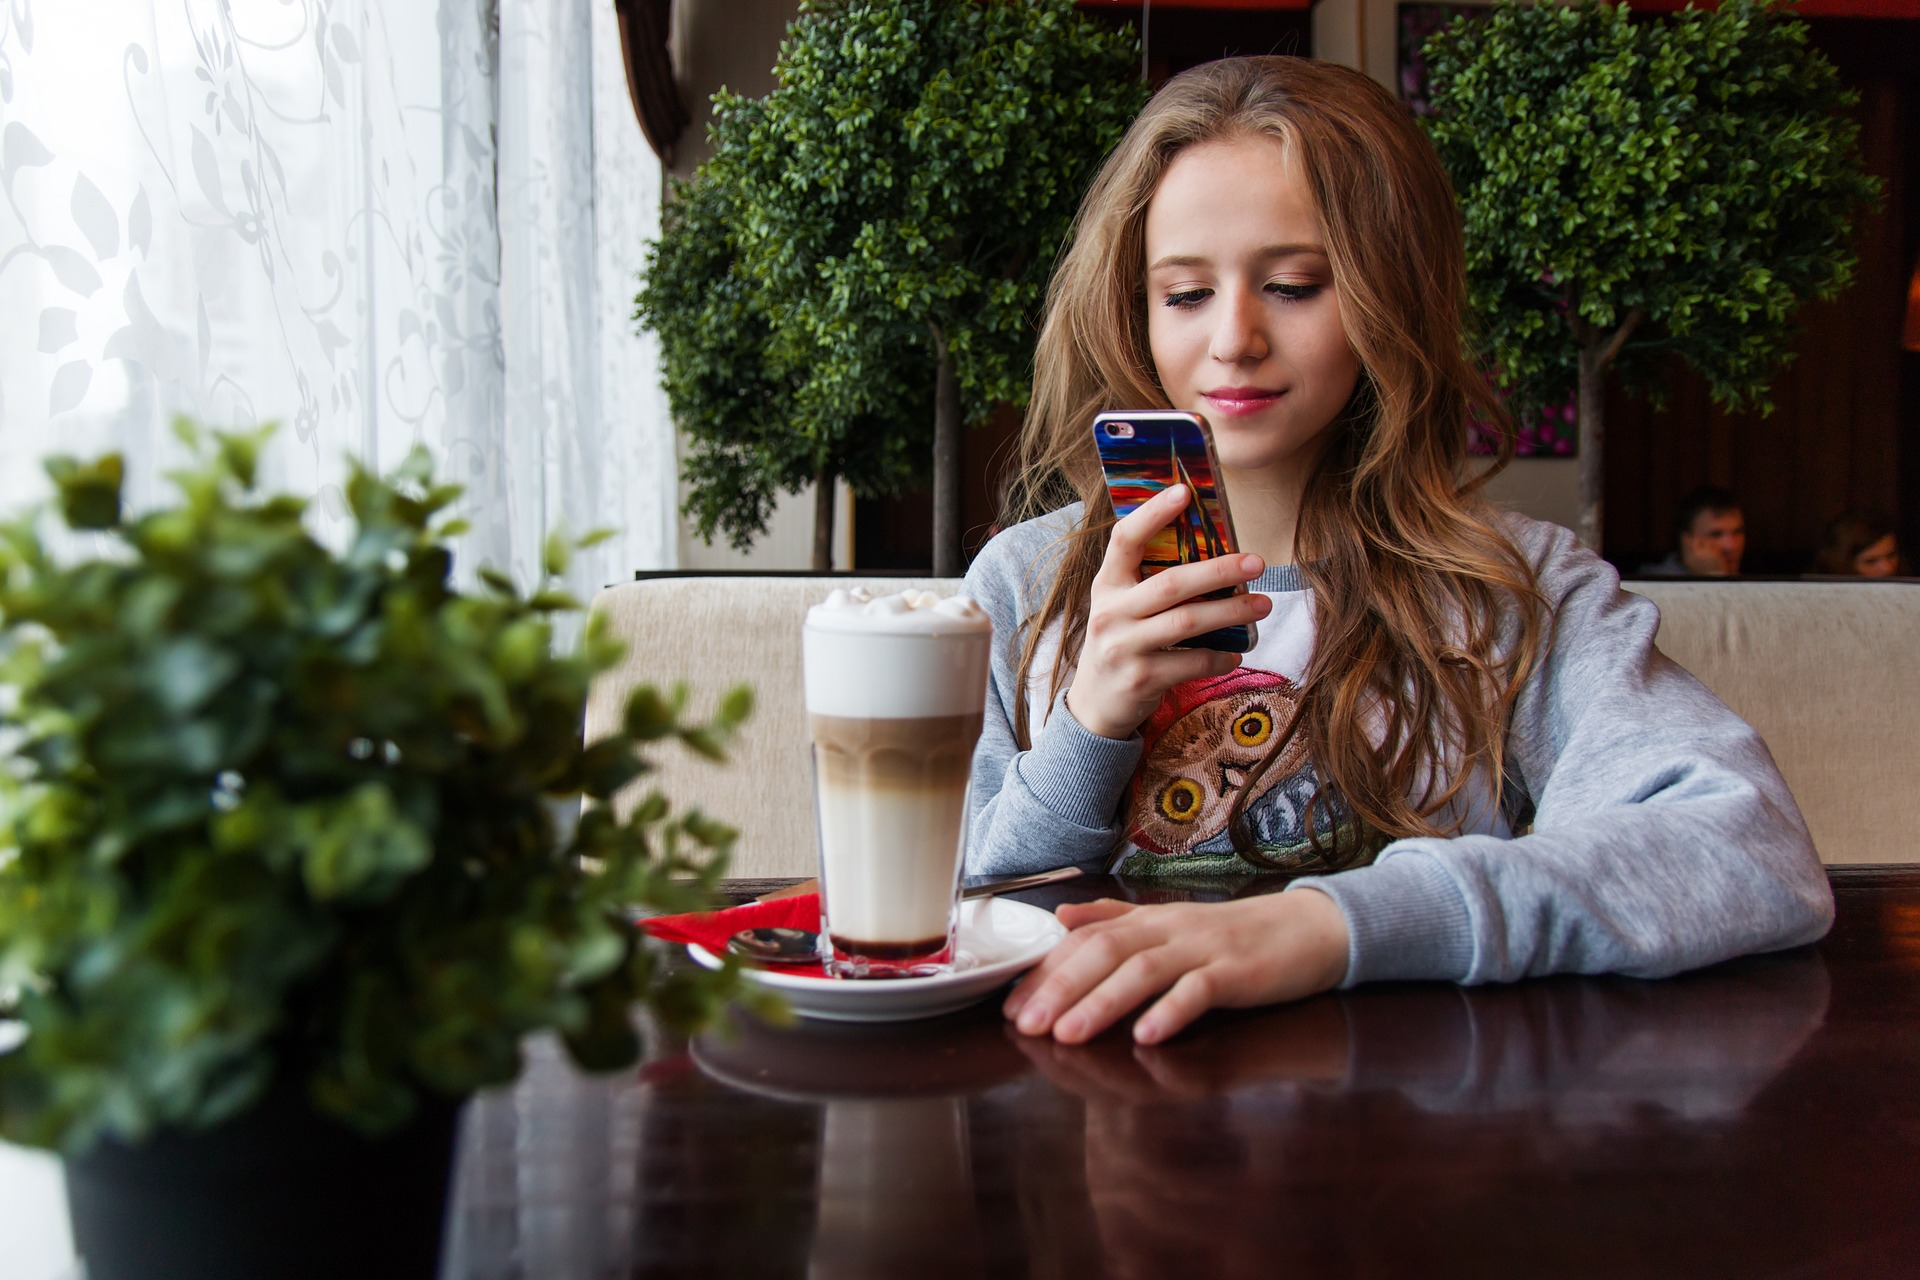 What You Need To Know About Smartphones' Impact on Digital Commerce